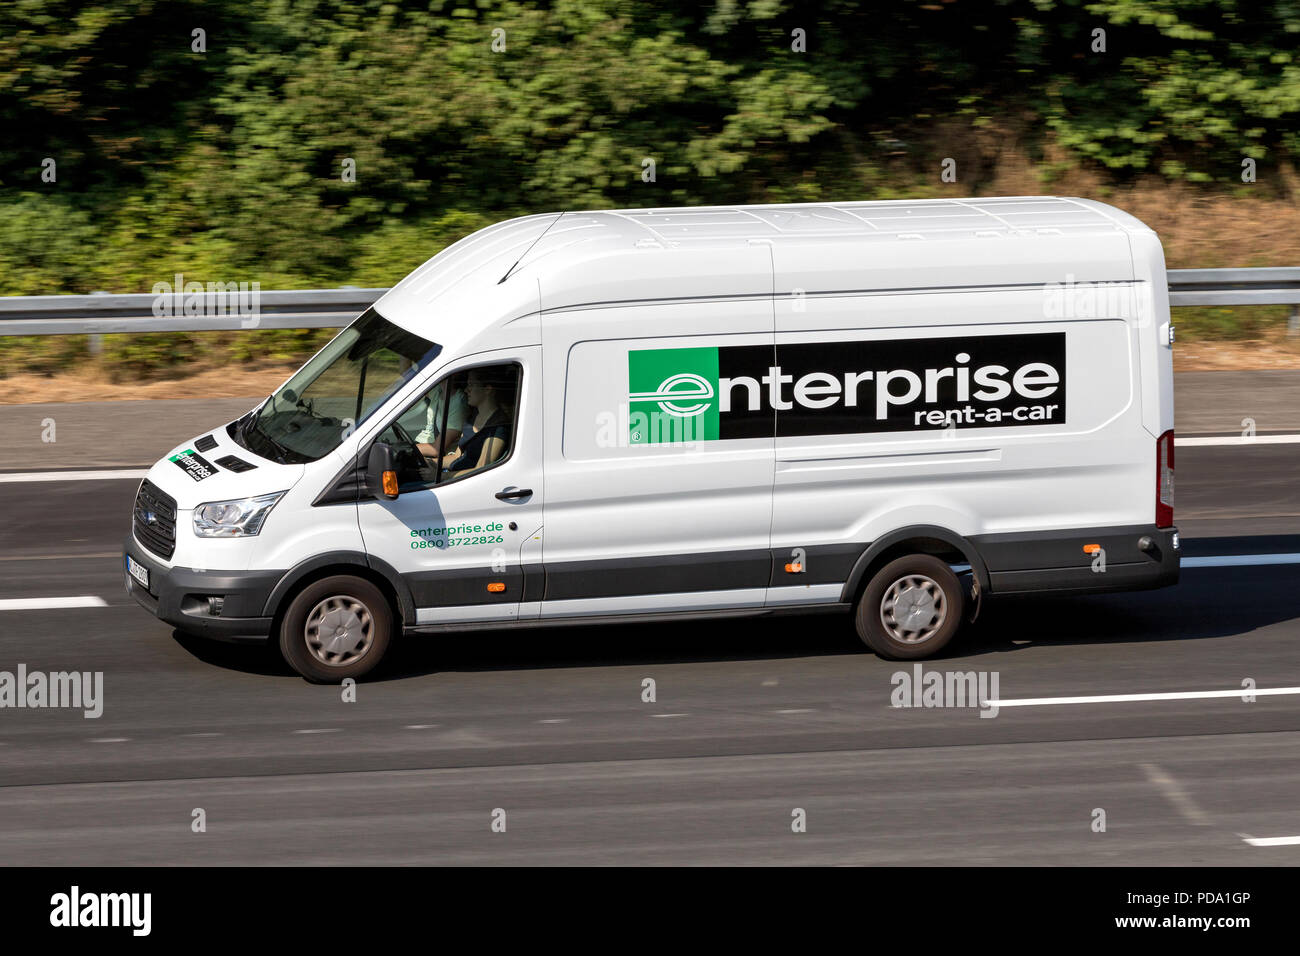 9916364870 Ford Transit of Enterprise on motorway. Enterprise Rent-A-Car is an American